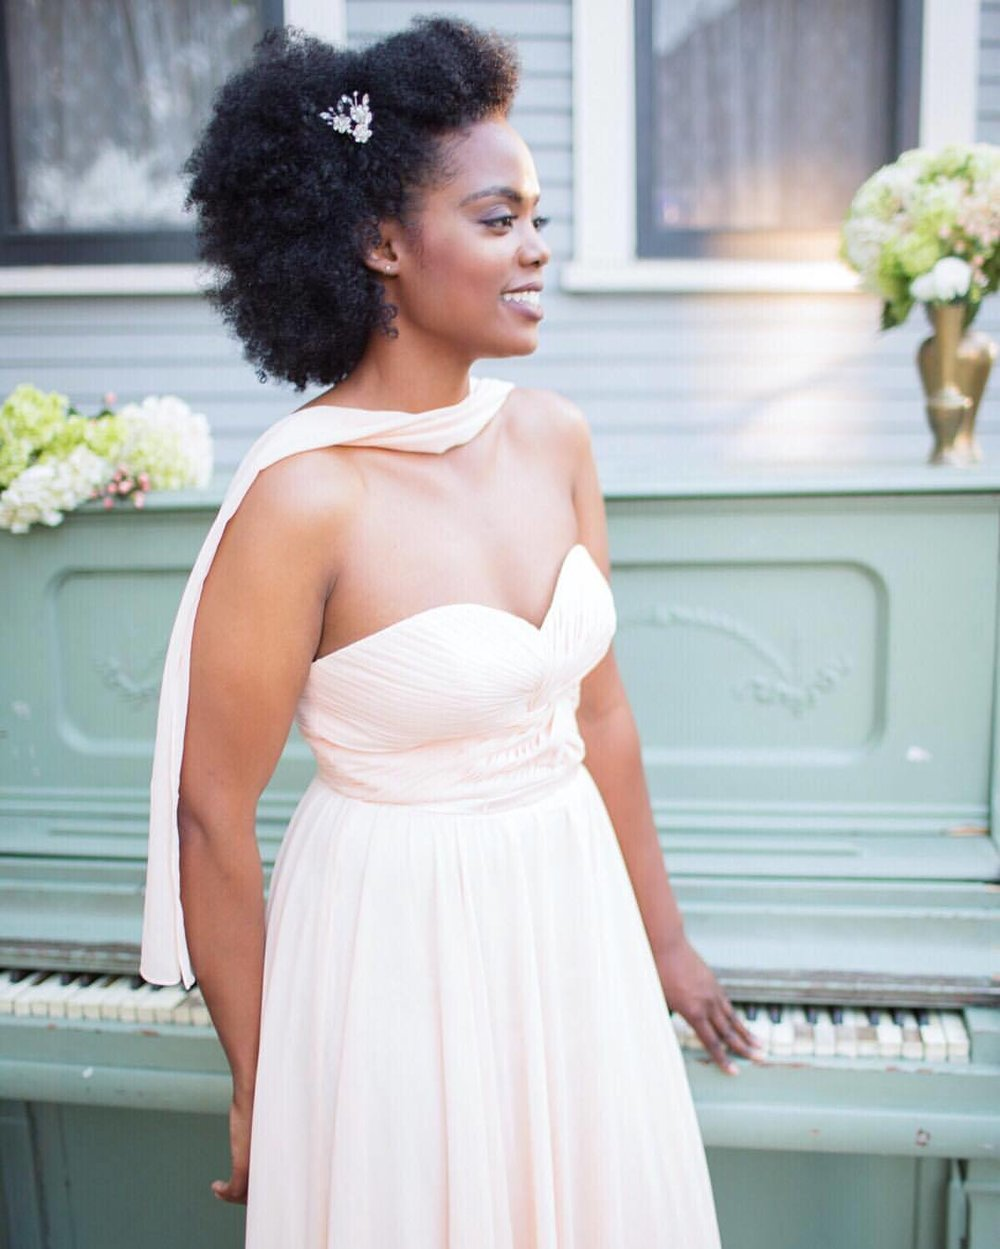 Need a little something extra for your bridesmaids? A delicate hair accent can give you that sparkle you want without over doing it.          ___________________________  #Accessories @theblushingbird #bridesmaiddress @uniquevintage #bridesmaidattire #weddingplanner #florals @cmweddingsandevents #bridesmaid @iamnovibrown #piano @toastpartyrentals #muah @alondraexcene_mua @maryluartistry #instaweddings #romance #weddingparty #happiness #followme #beautiful #happy #pretty #weddinginsperation #beauty #uniquevintage #weddingphotographer #pdx #la #vancouverwashington #exquisitemagazine #blogfeature  (at The Bembridge House)